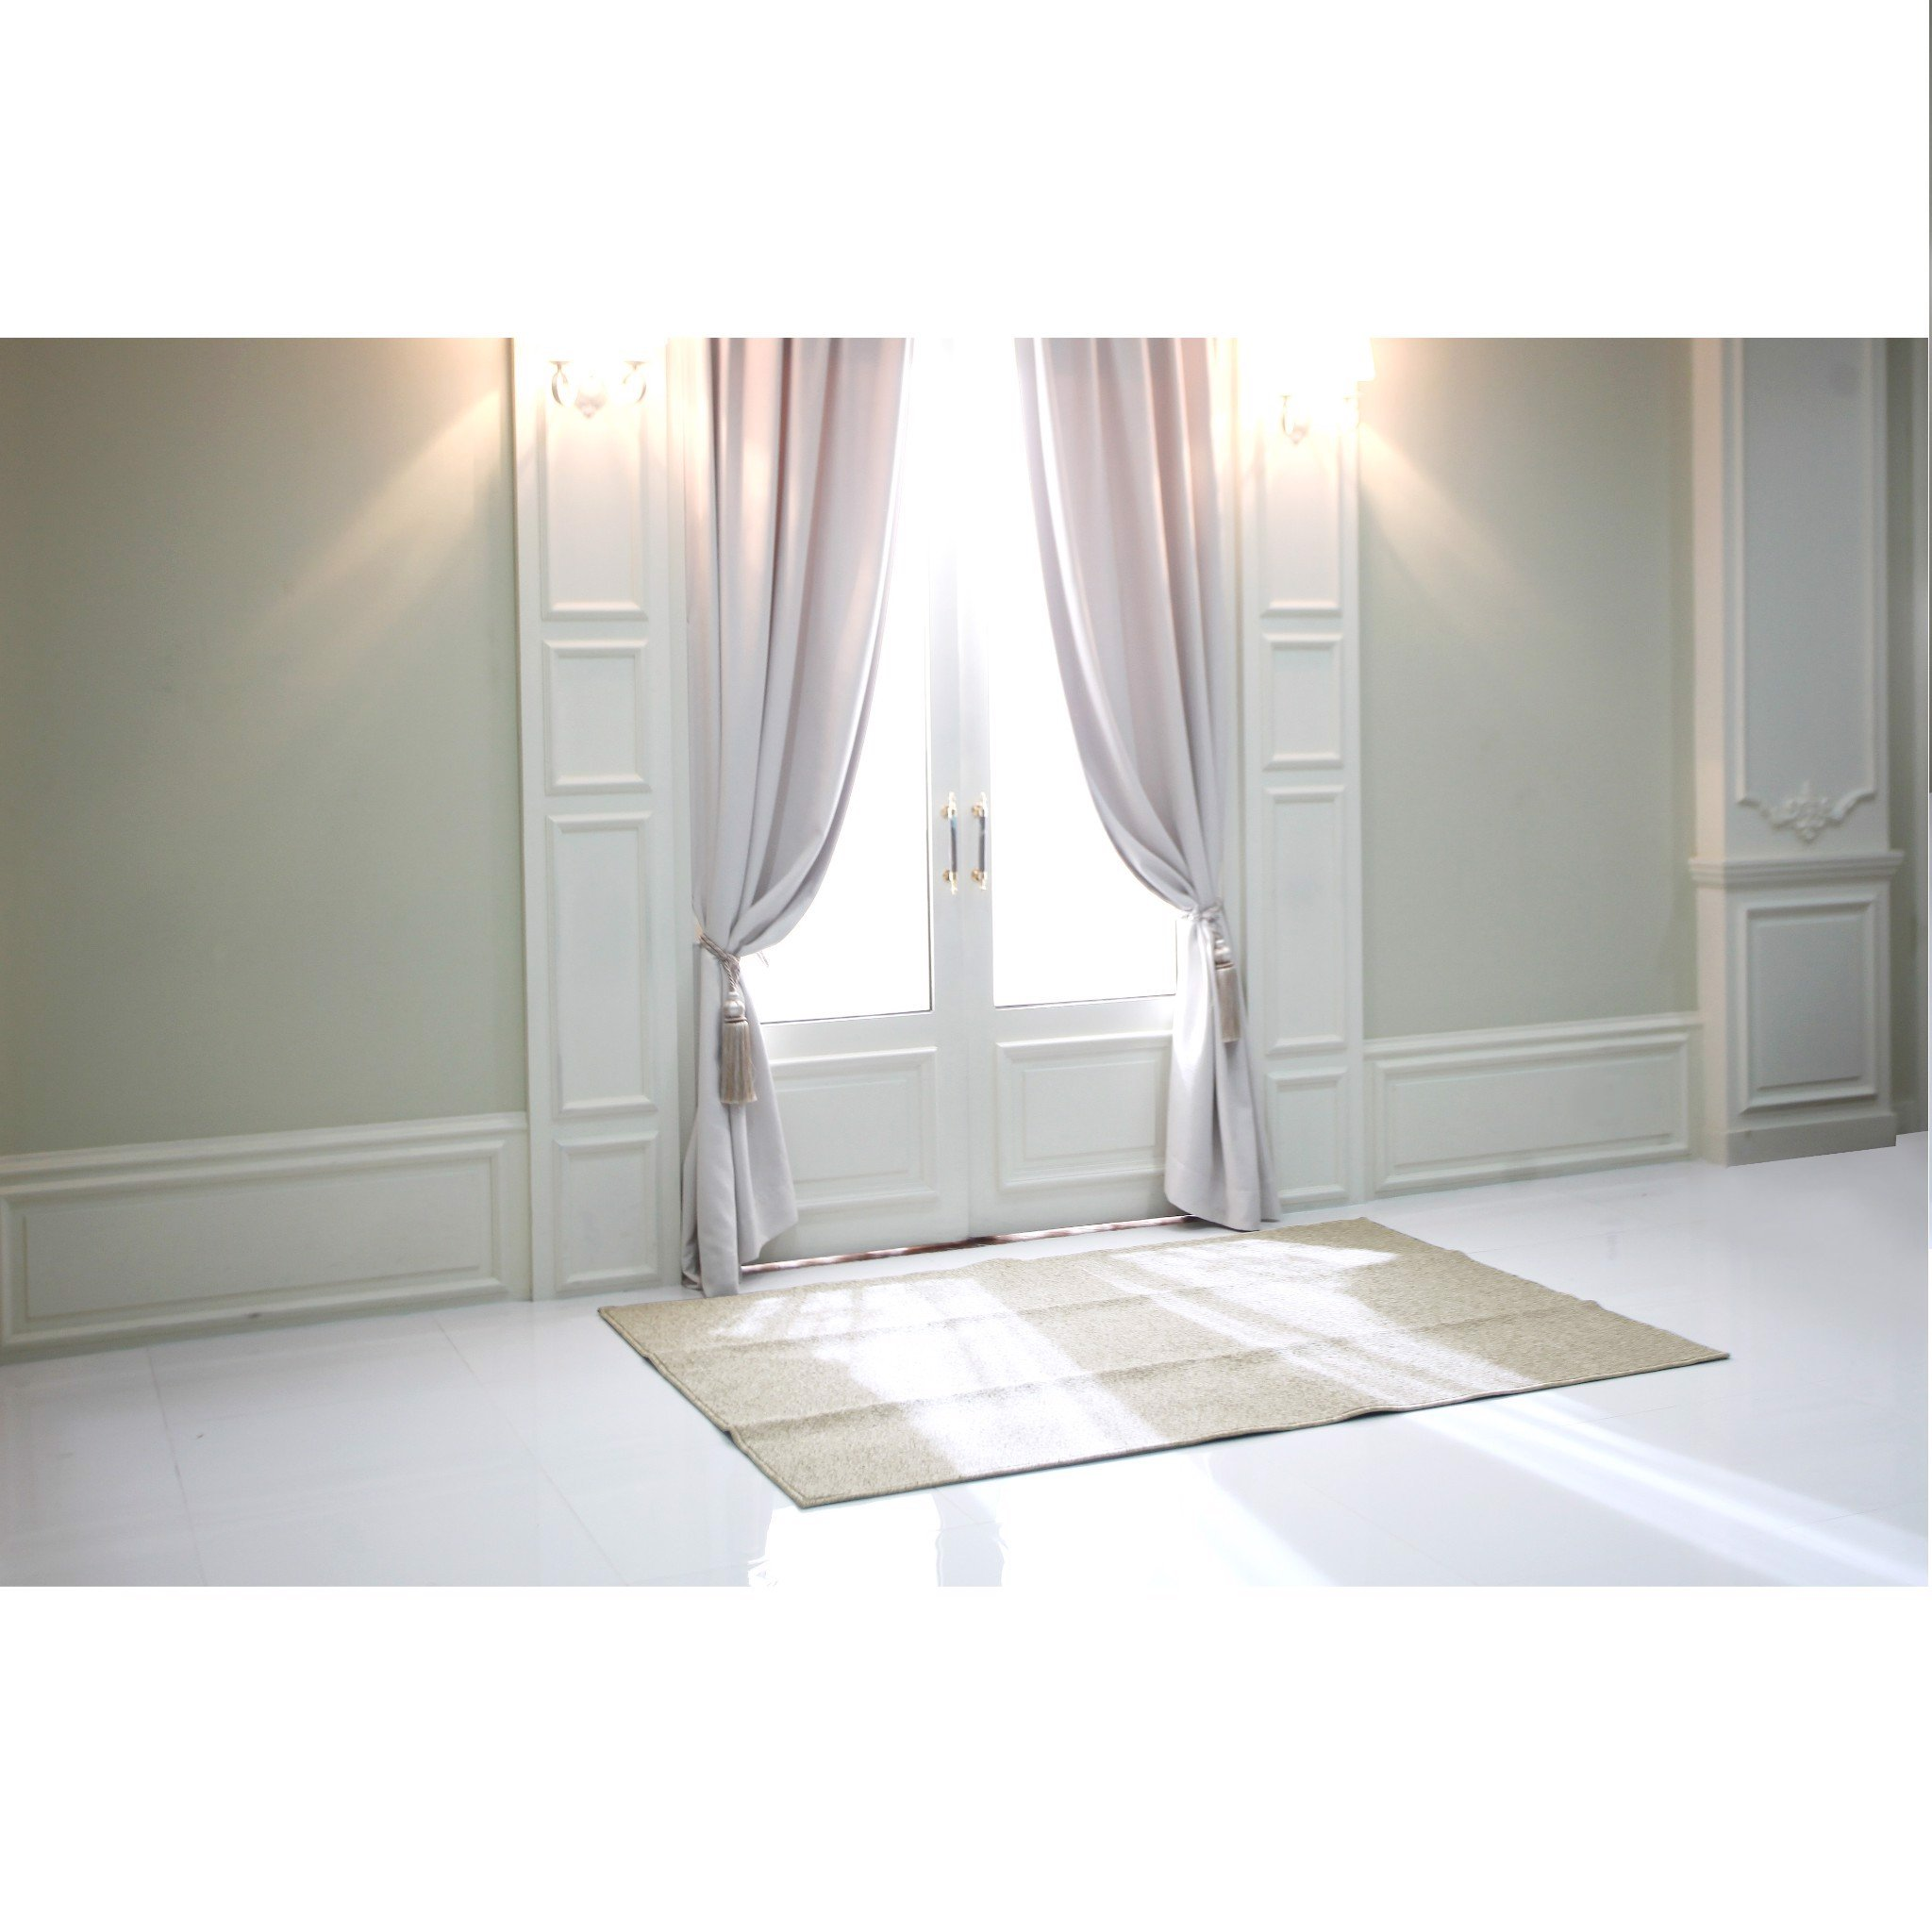 Thảm Carmi Point Border Ivory/Beige/Moca 160 x 230cm